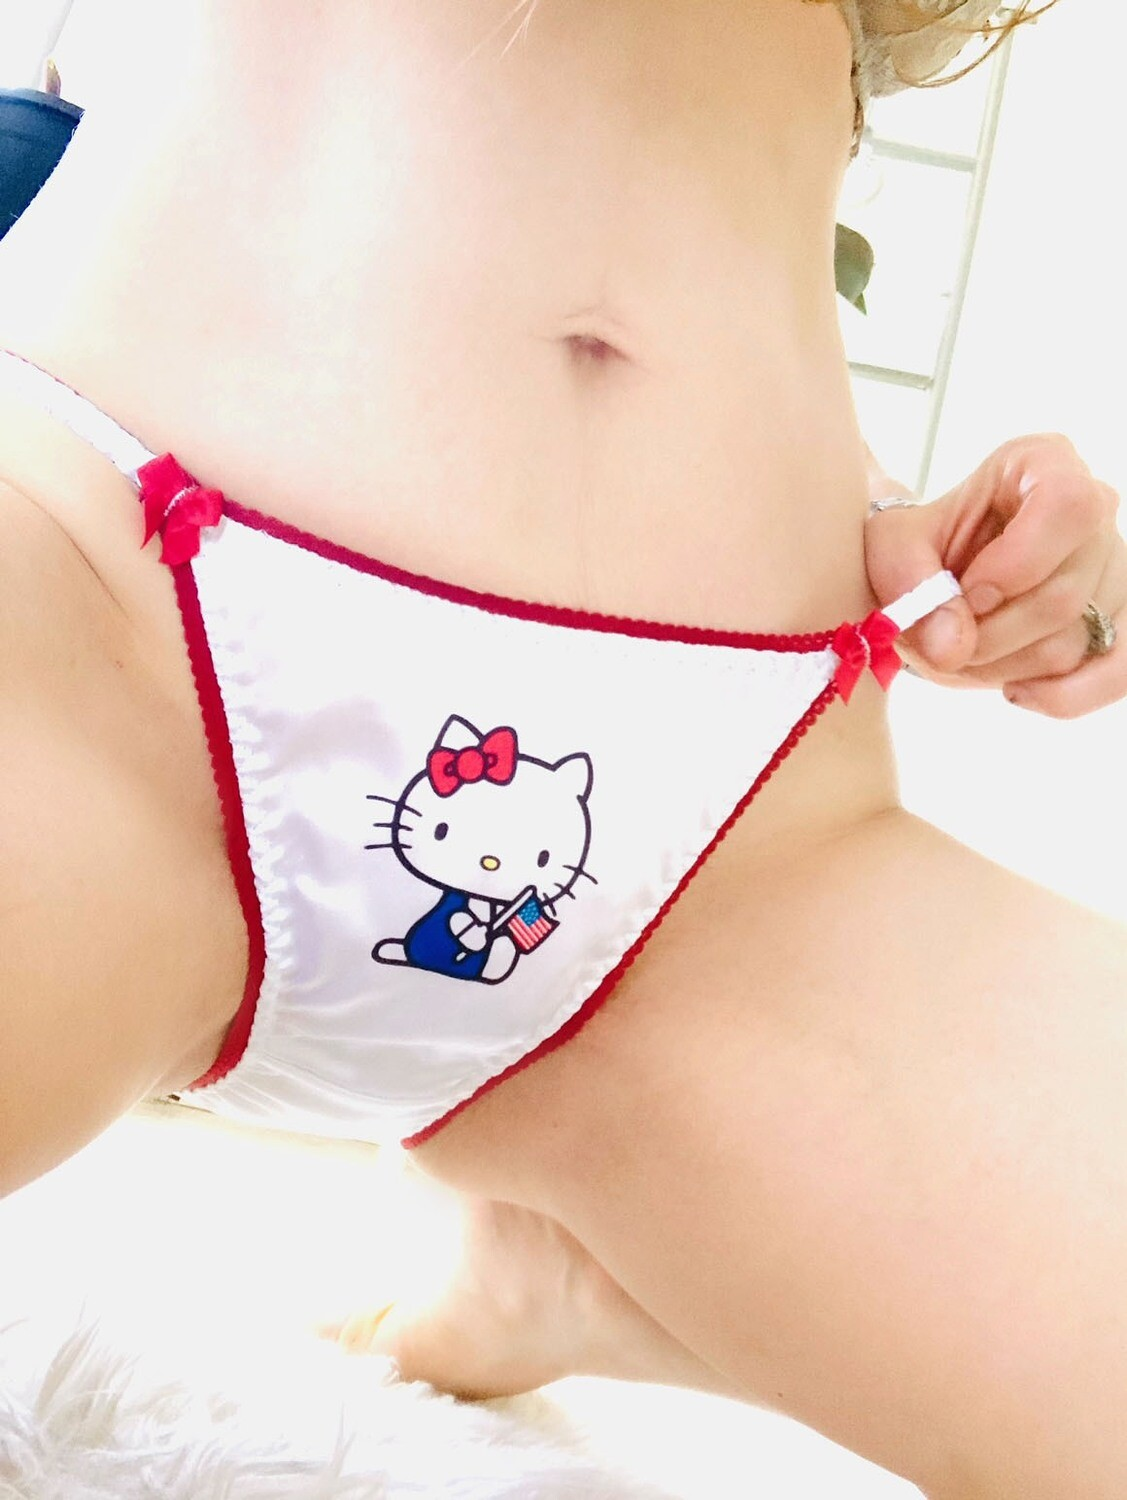 Lace Duchess Classic 80's cut Hello Kitty 4th of July Patriotic USA Character movie print sissy satin wet look ladies panties sz 5 6 7 8